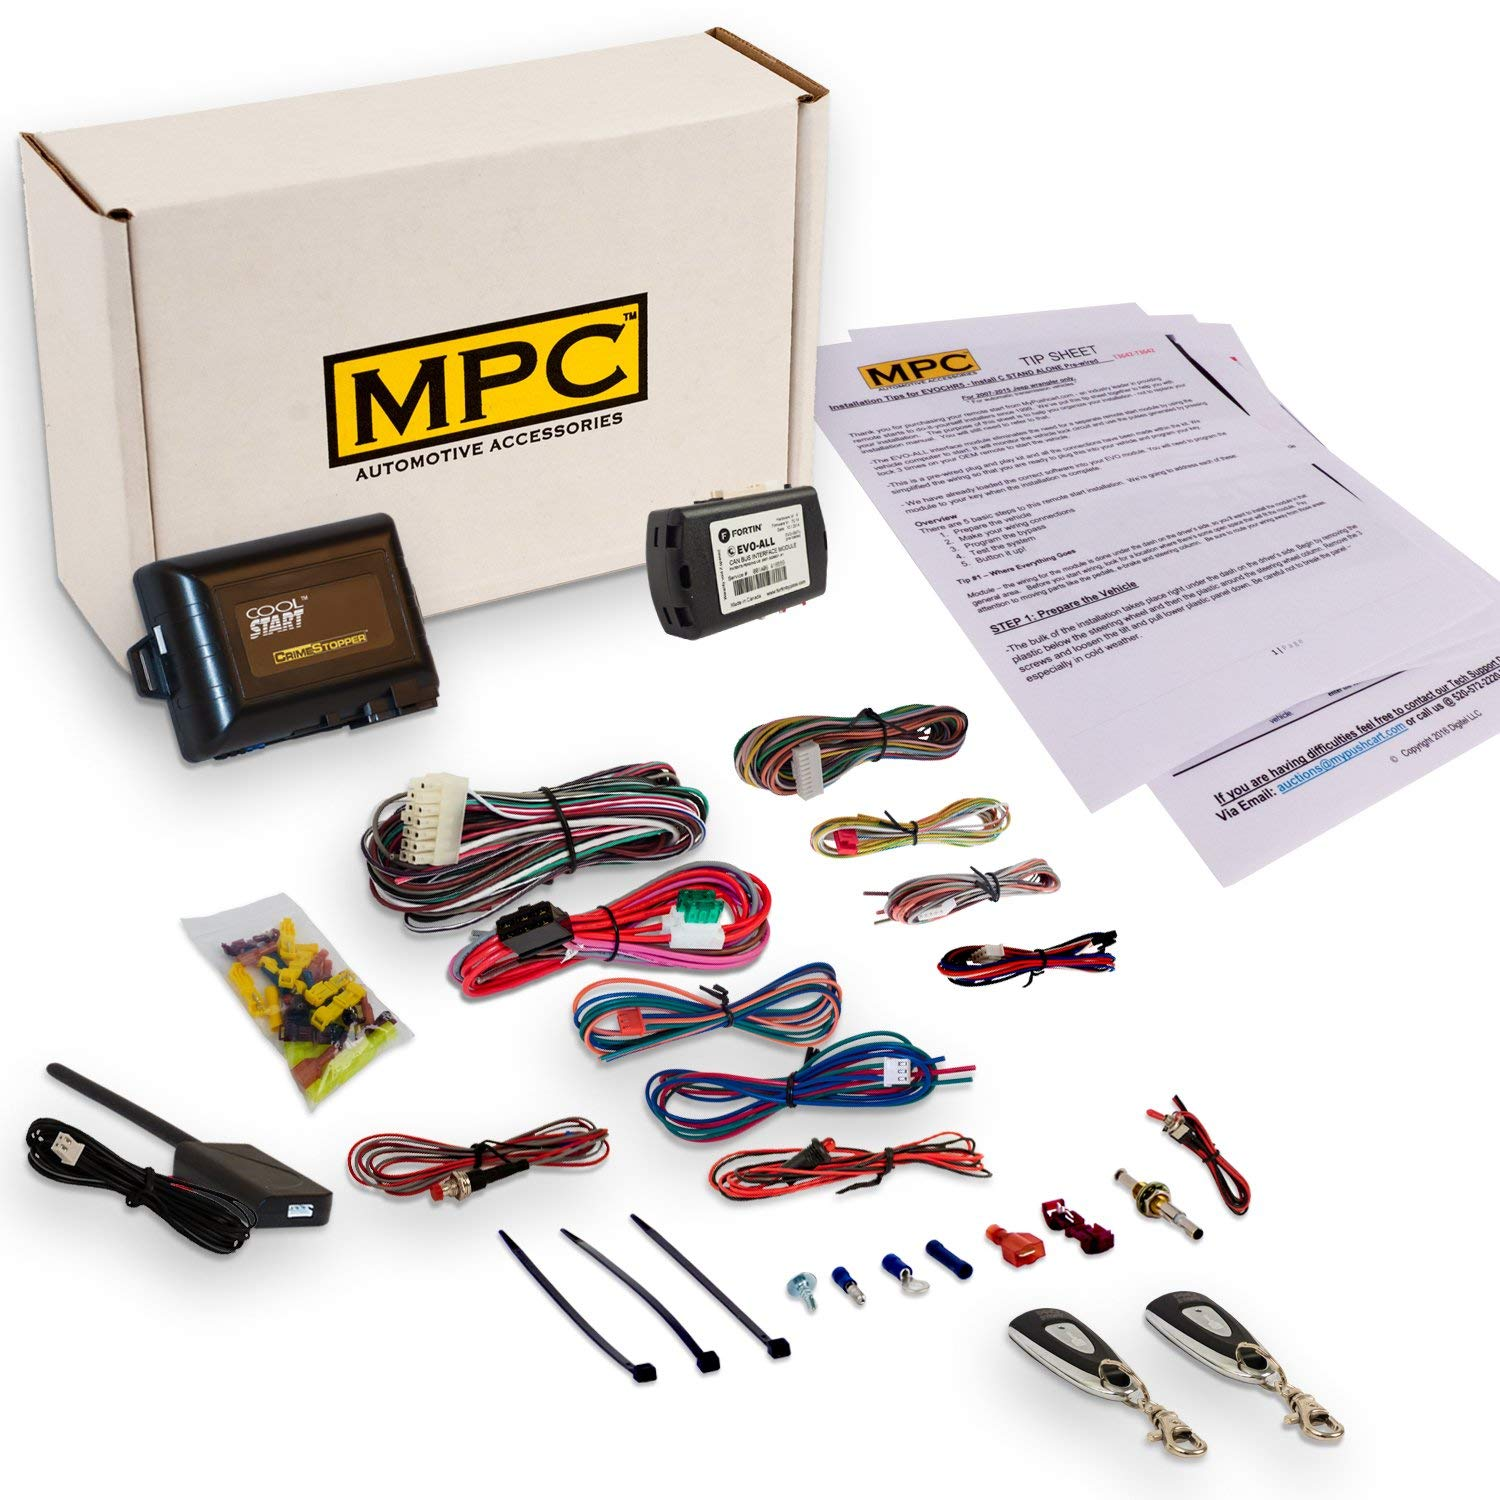 Get Quotations Mpc Complete 1 On Remote Start Kit For 2017 Toyota Sienna With Key